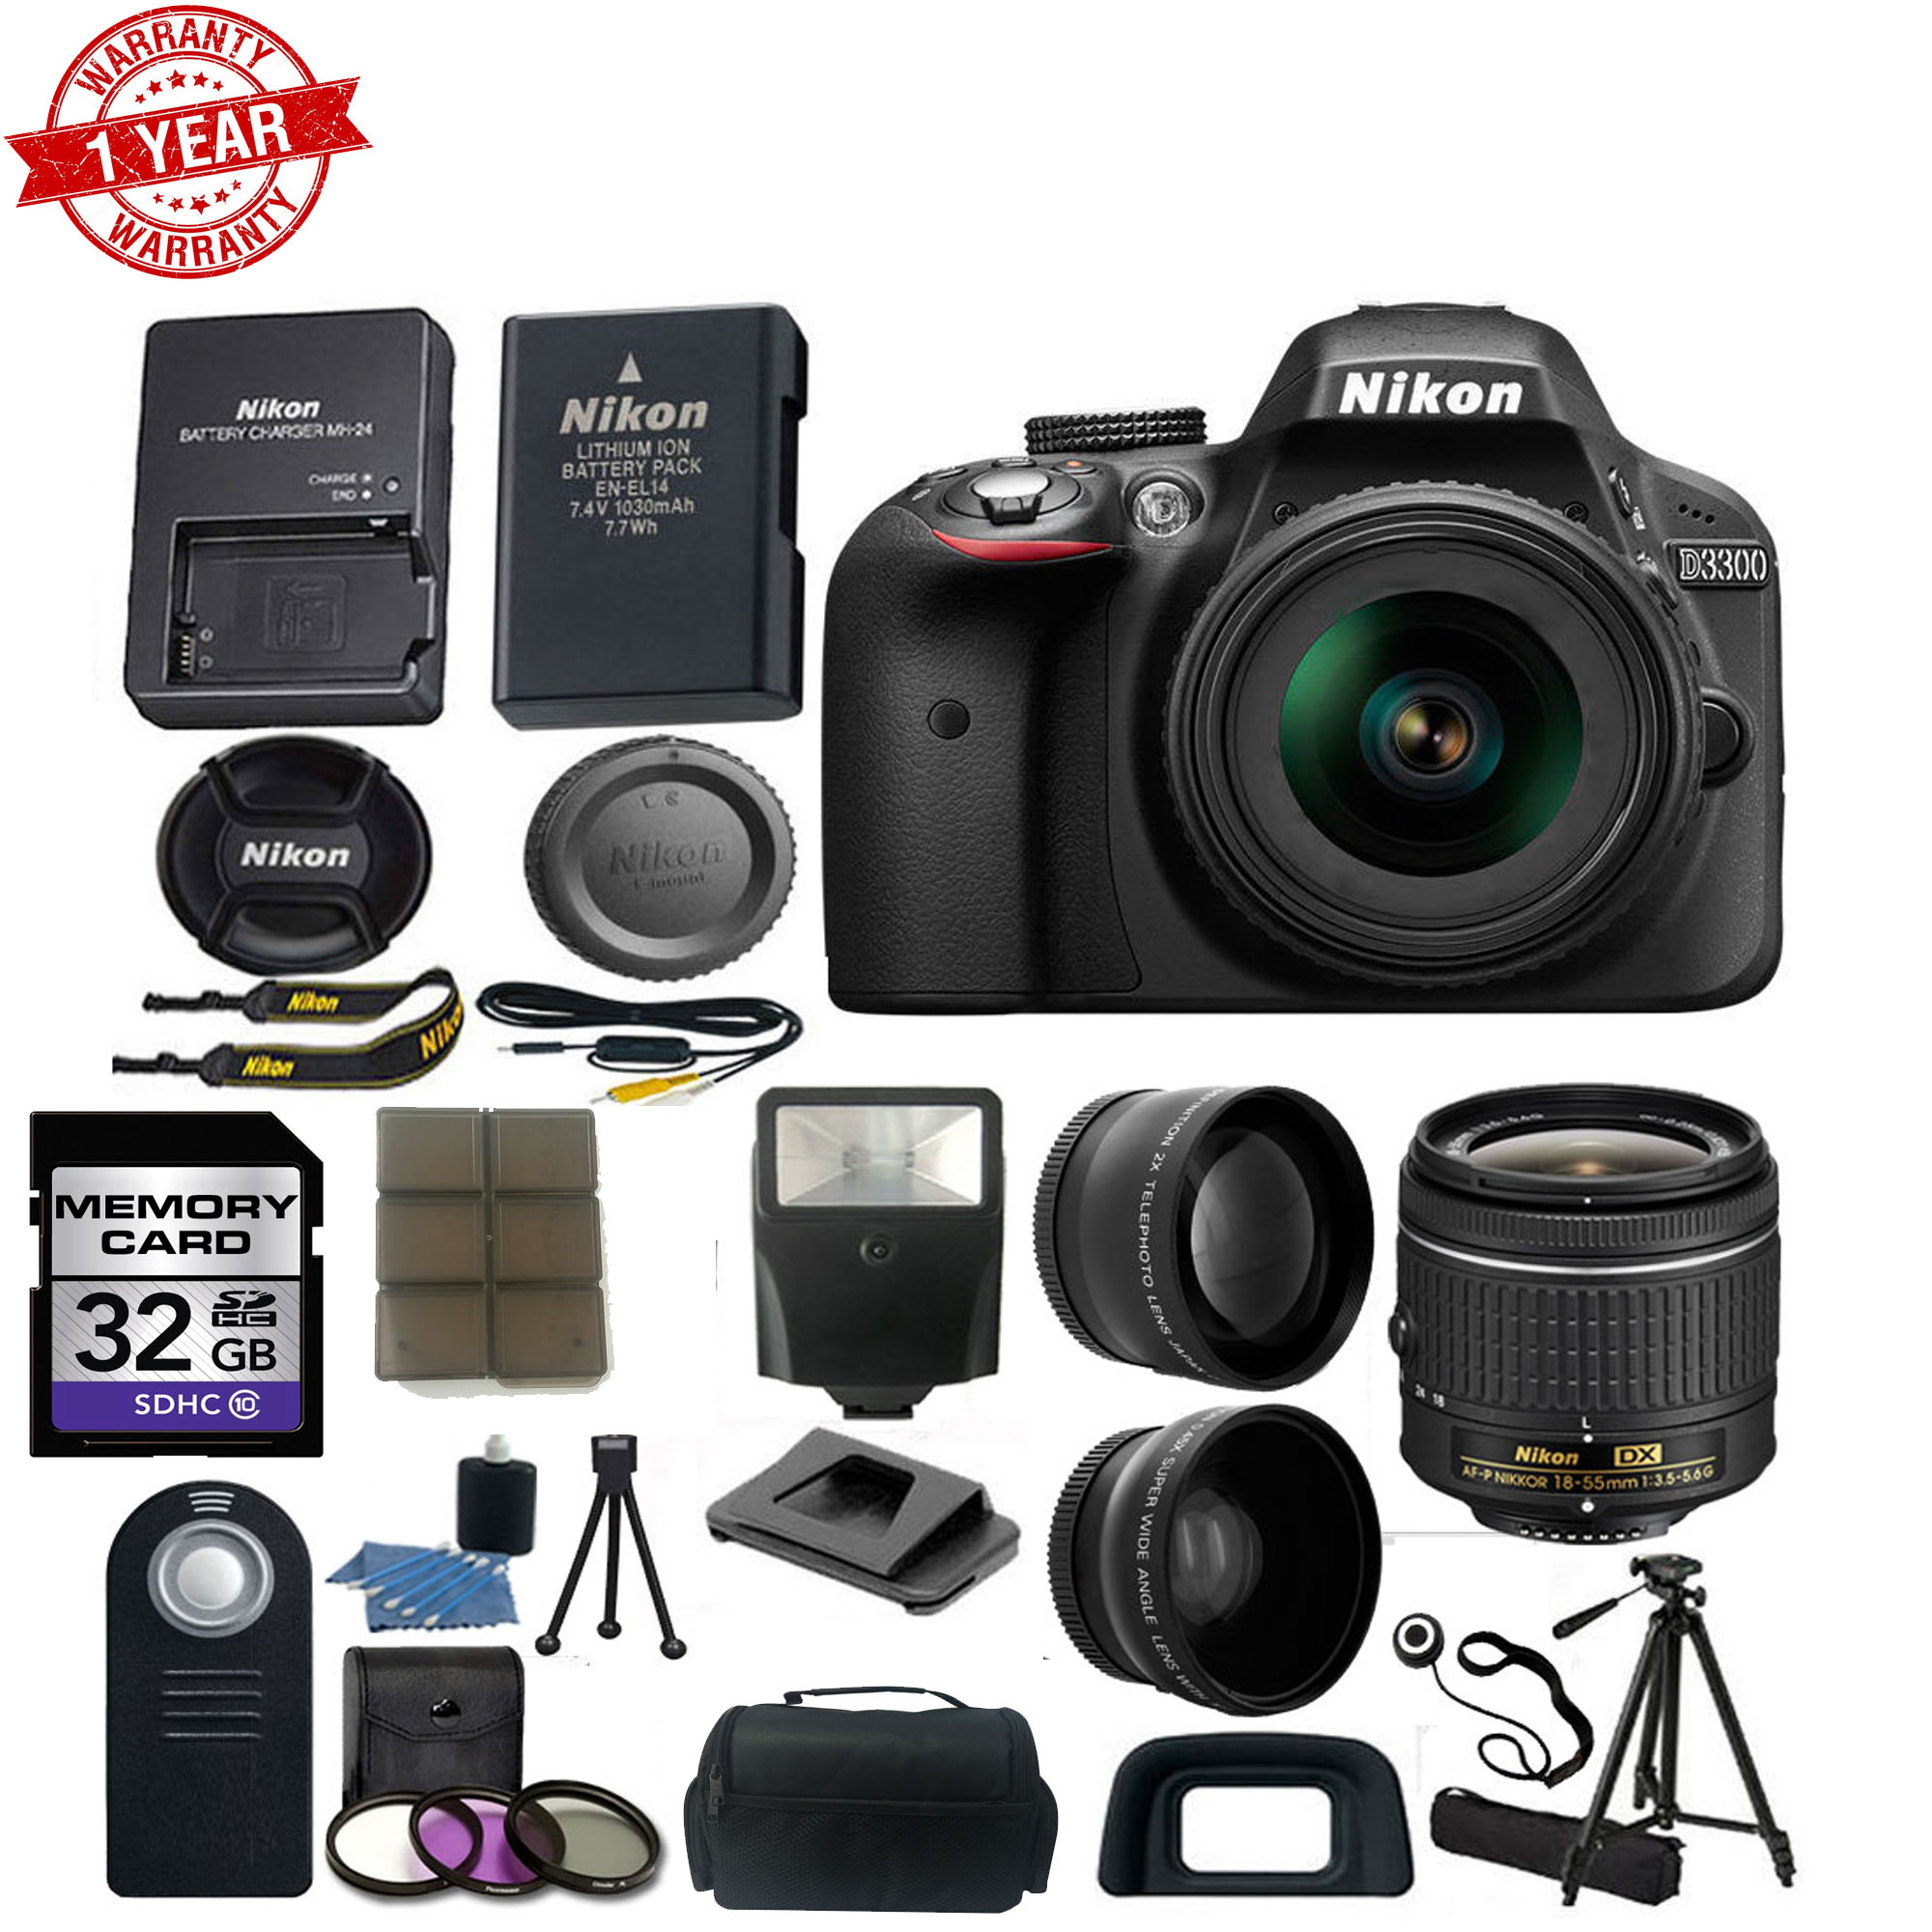 Nikon D3300 Digital Slr Camera W 18 55mm Af P Dx Lens Wide Angle Amp Telephoto Lens Tripod Camera Case 32gb Card Wireless Remote Deluxe Bundle Kit Walmart Com Walmart Com